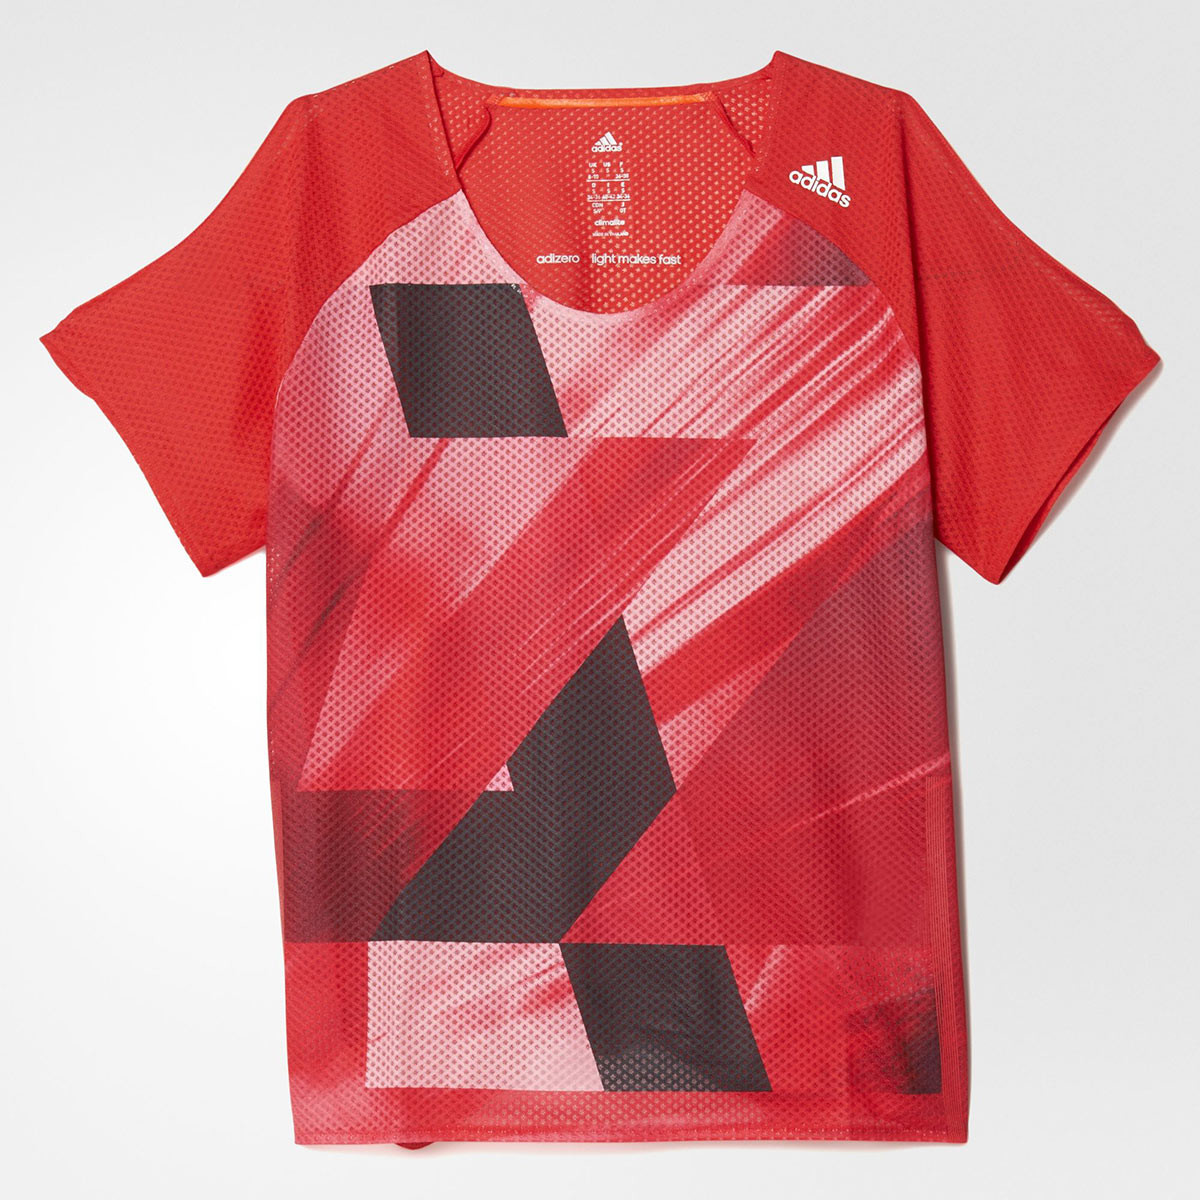 71a36a859b3 adidas adizero Short Sleeve - Running tops for Women - Red | 21RUN